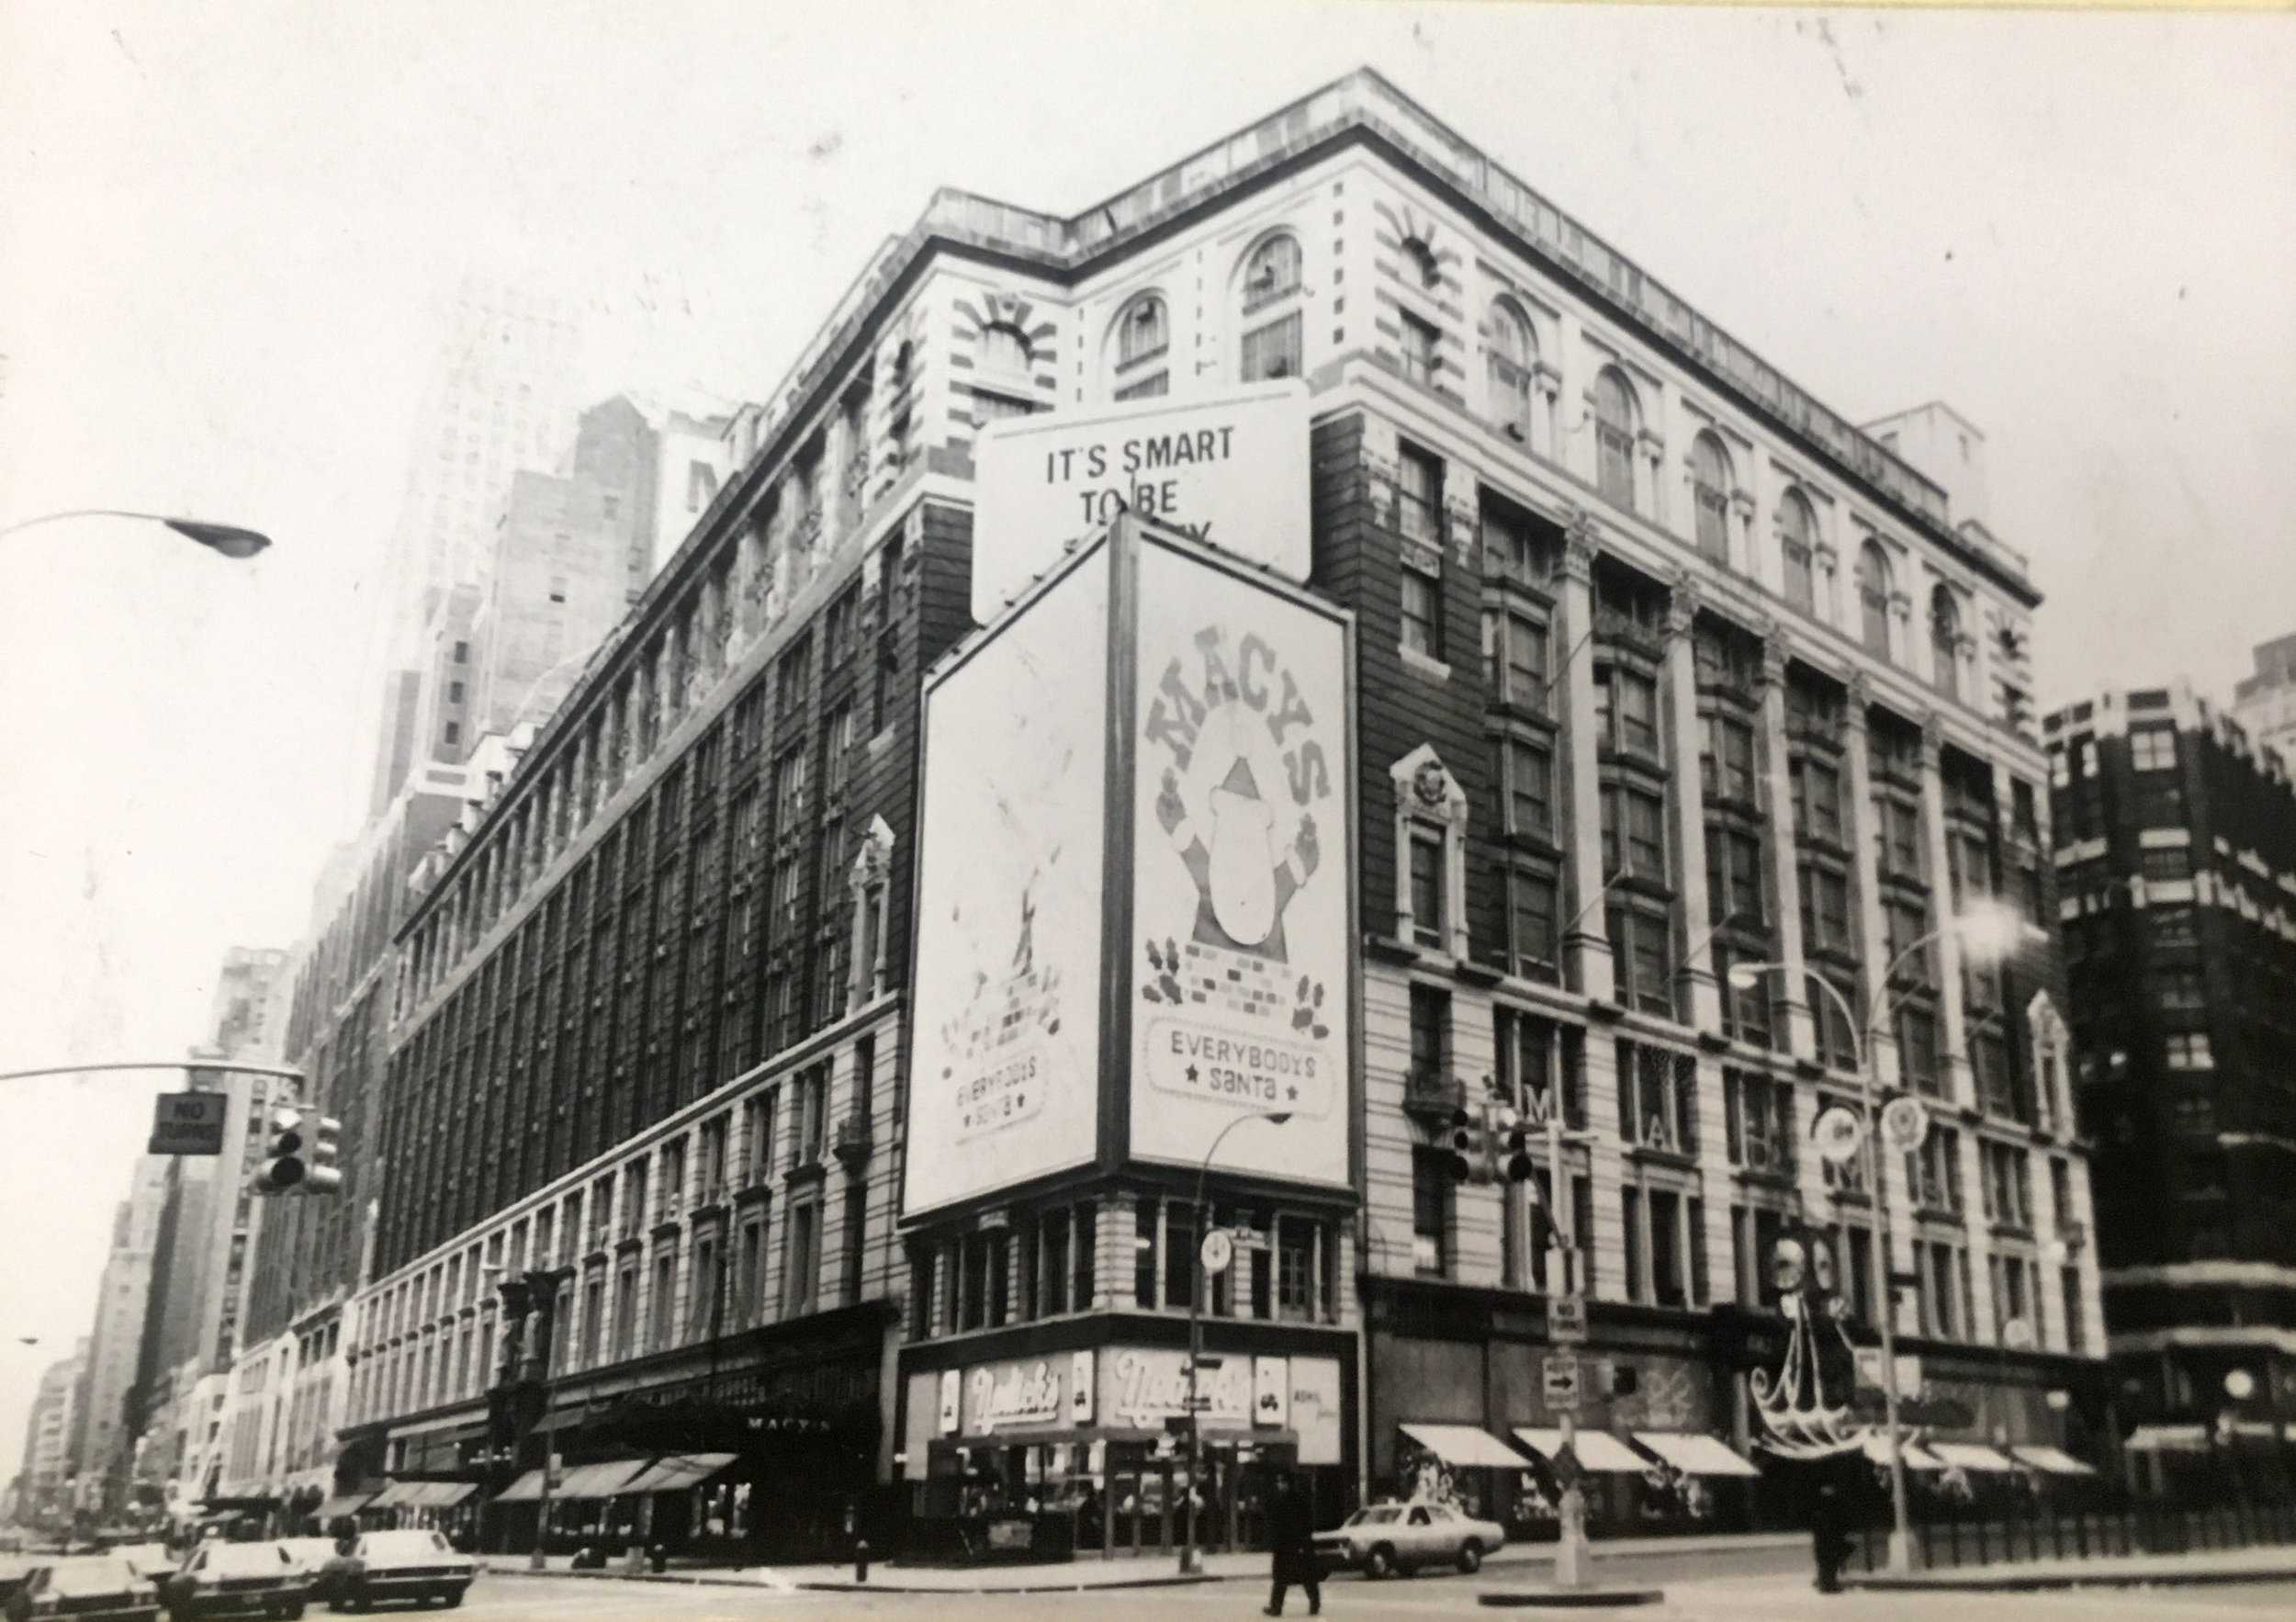 """1317-1329 Broadway, Macy's flagship building with ad saying """"Macy's-Everybody's Santa,"""" 1972. Department of Finance Collection, NYC Municipal Archives."""